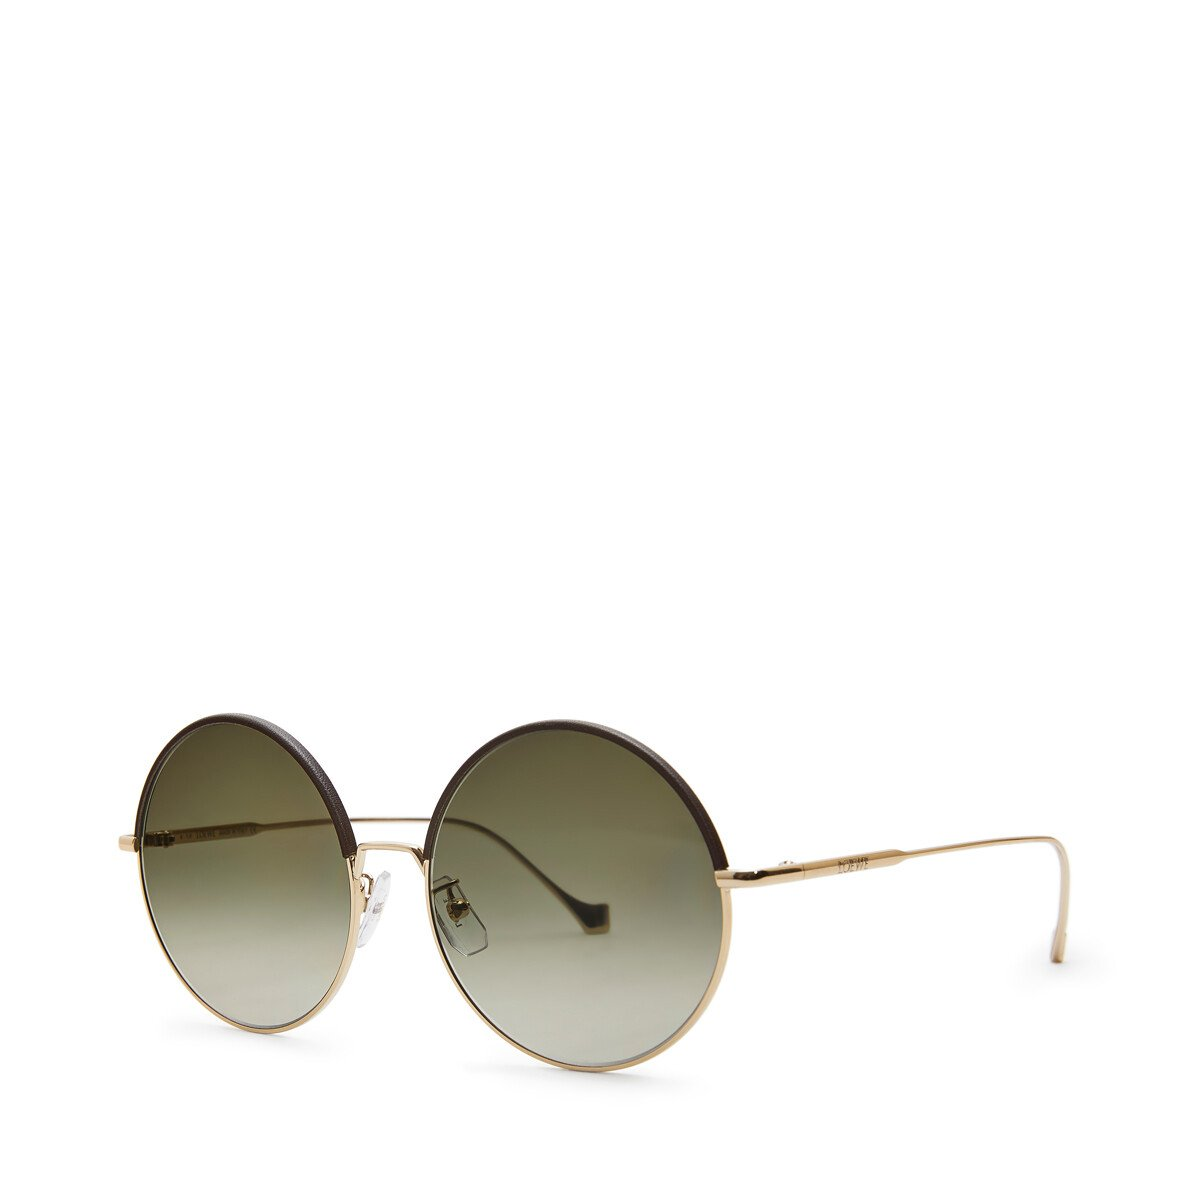 LOEWE Round Sunglasses Brown/Khaki Green front